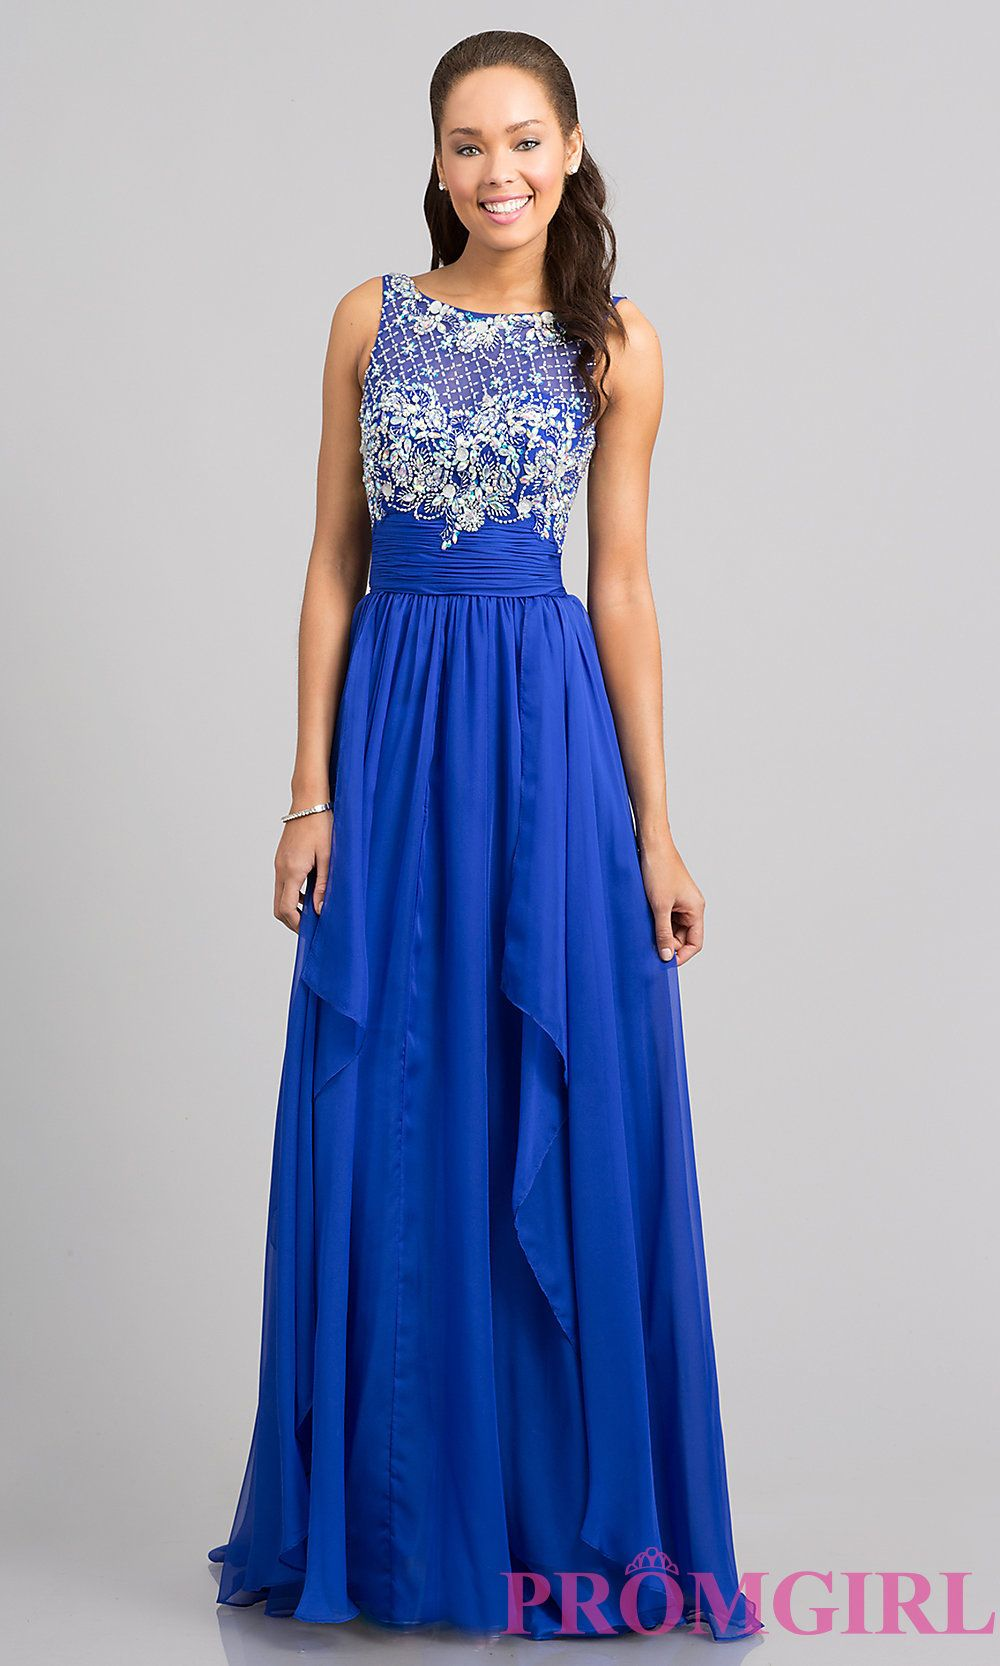 Long prom dresses sleeveless evening gowns prom gowns promgirl